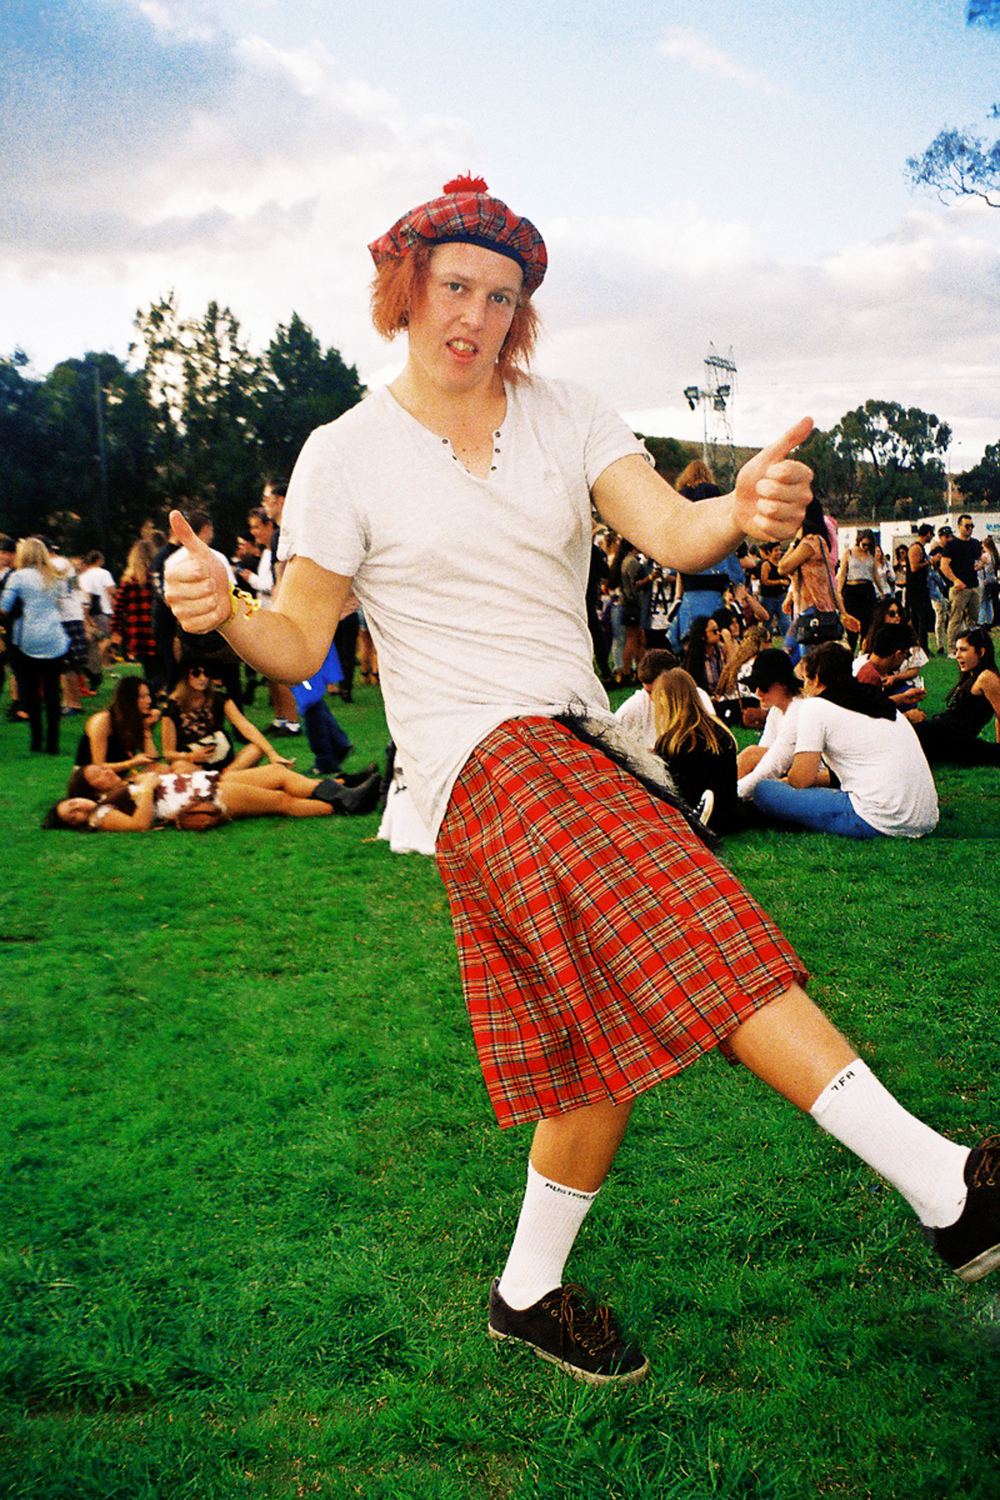 VOENA_GROOVIN_THE_MOO_CANBERRA_FILM_2015_35MM_PHOTOS-14.jpg